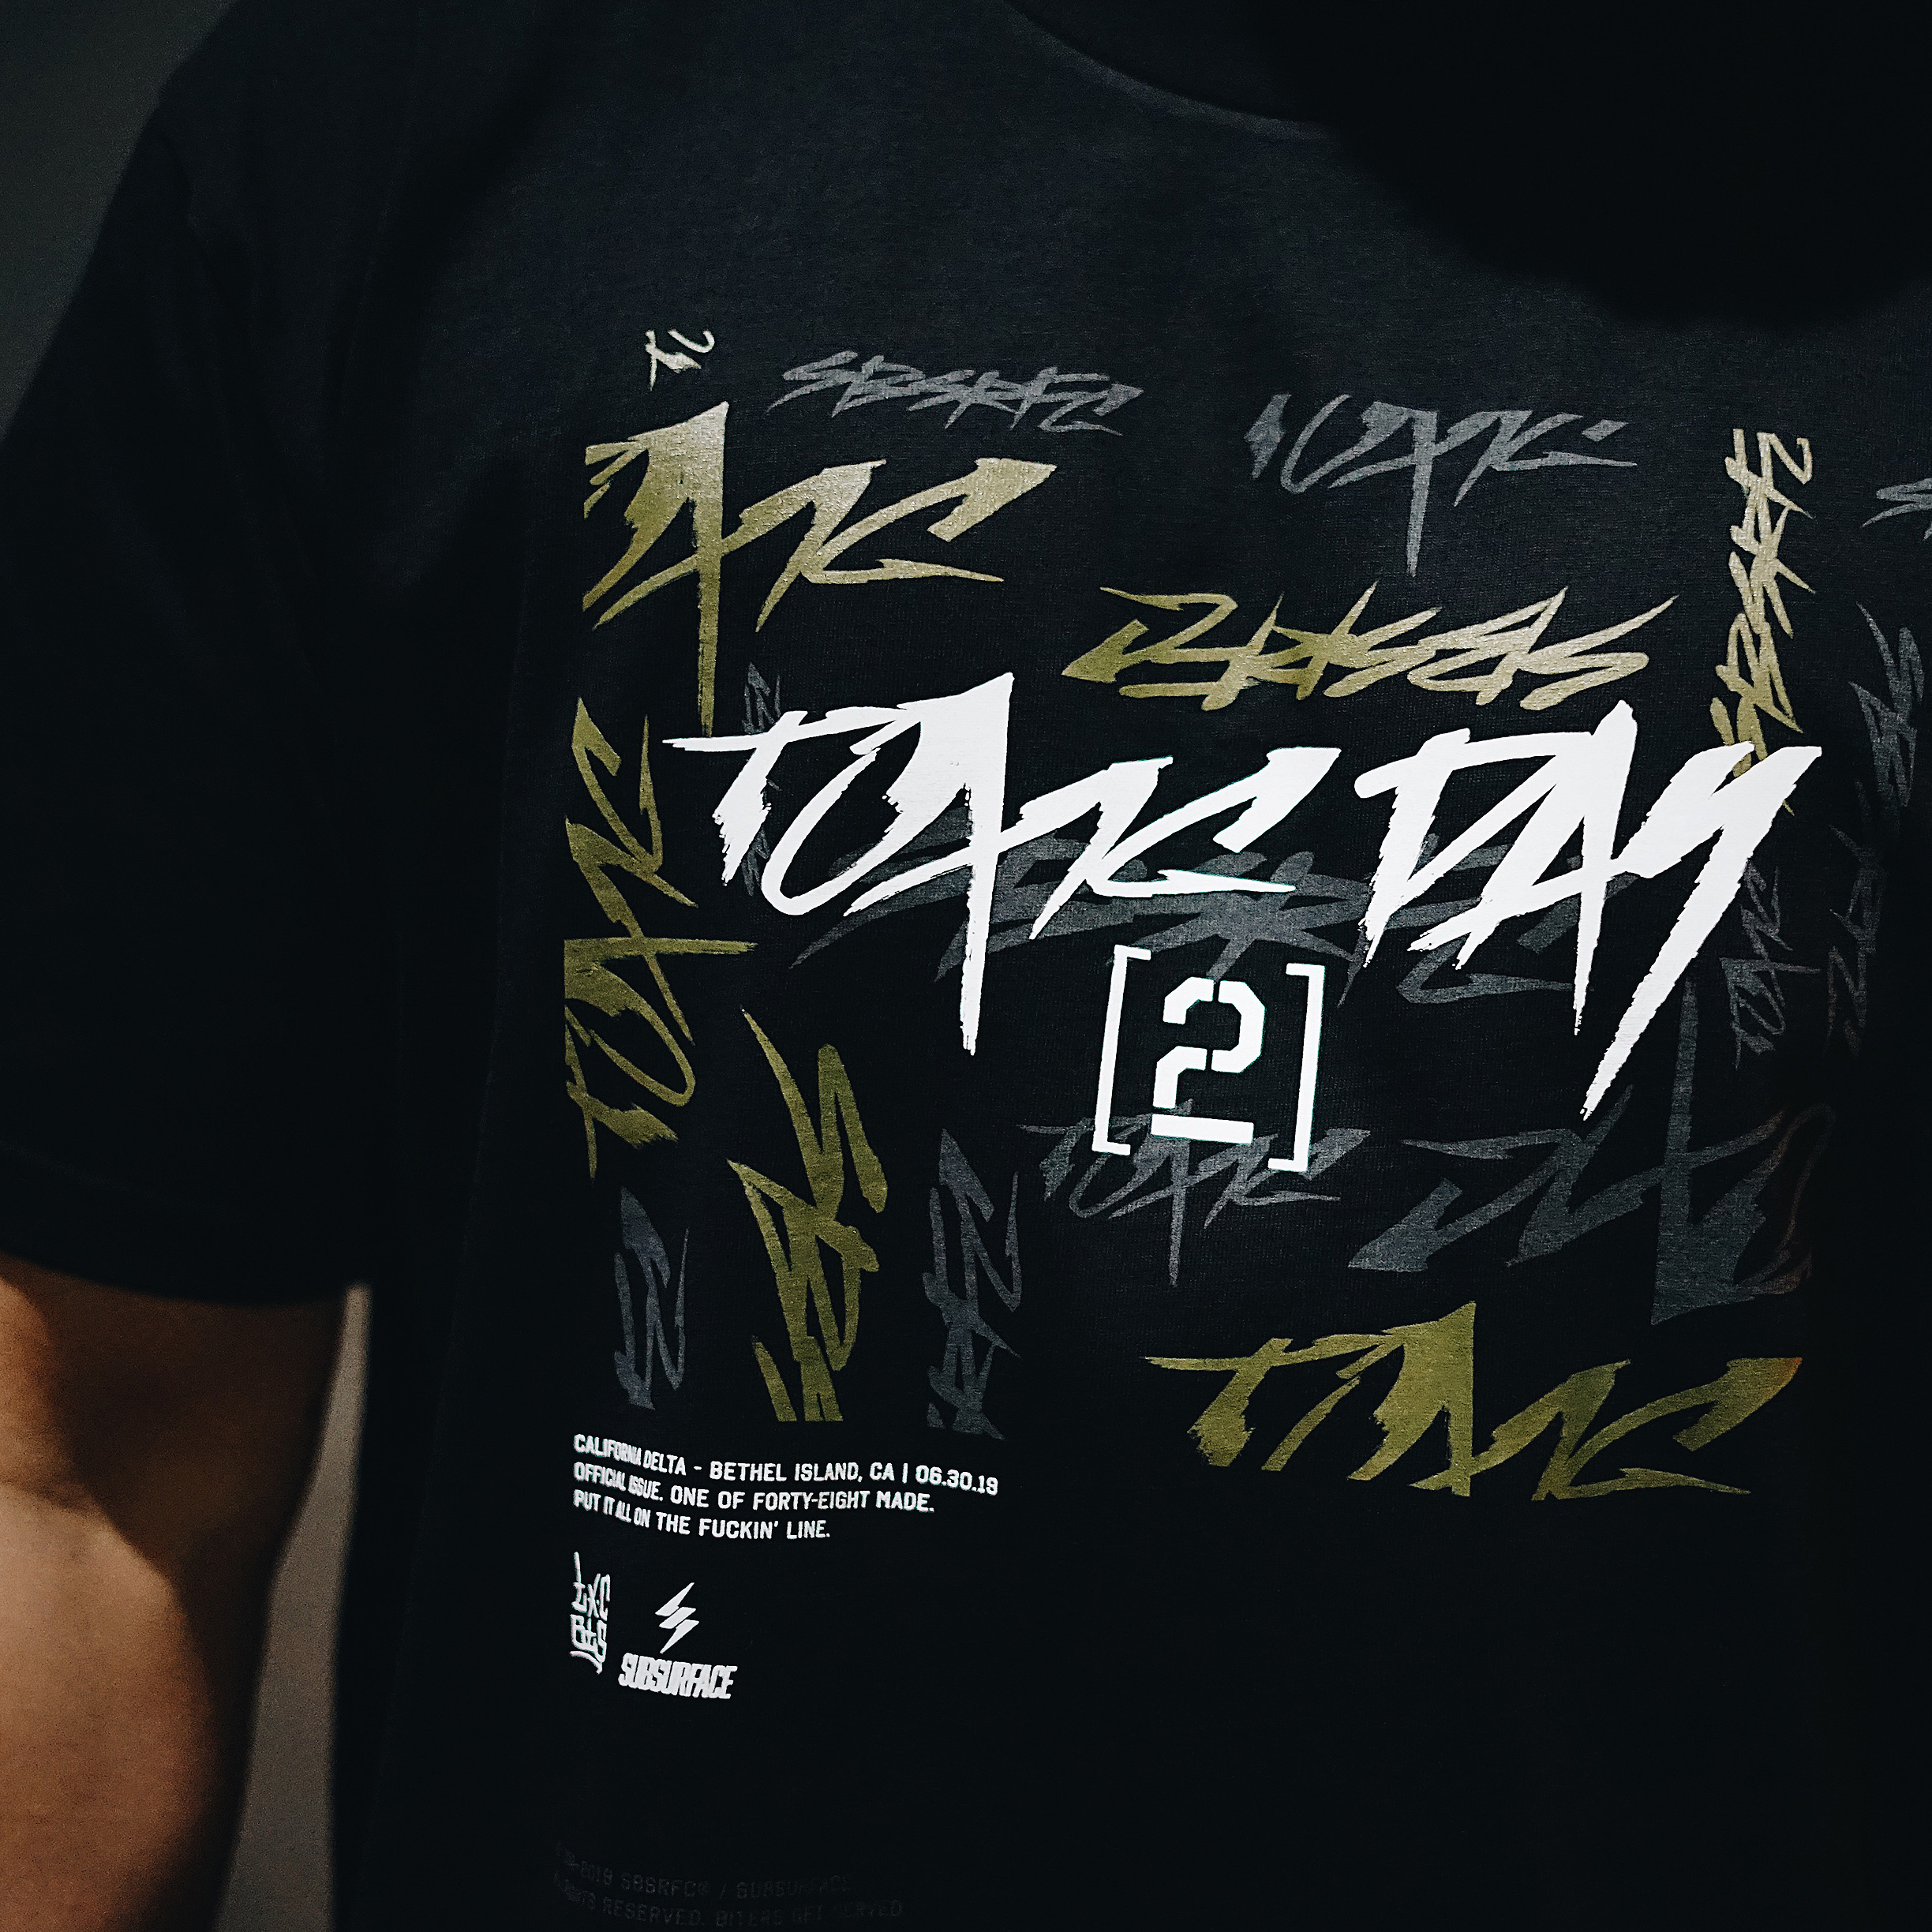 SBSRFC_Product_Image_Toxic_Day_2_Tee_9.jpg